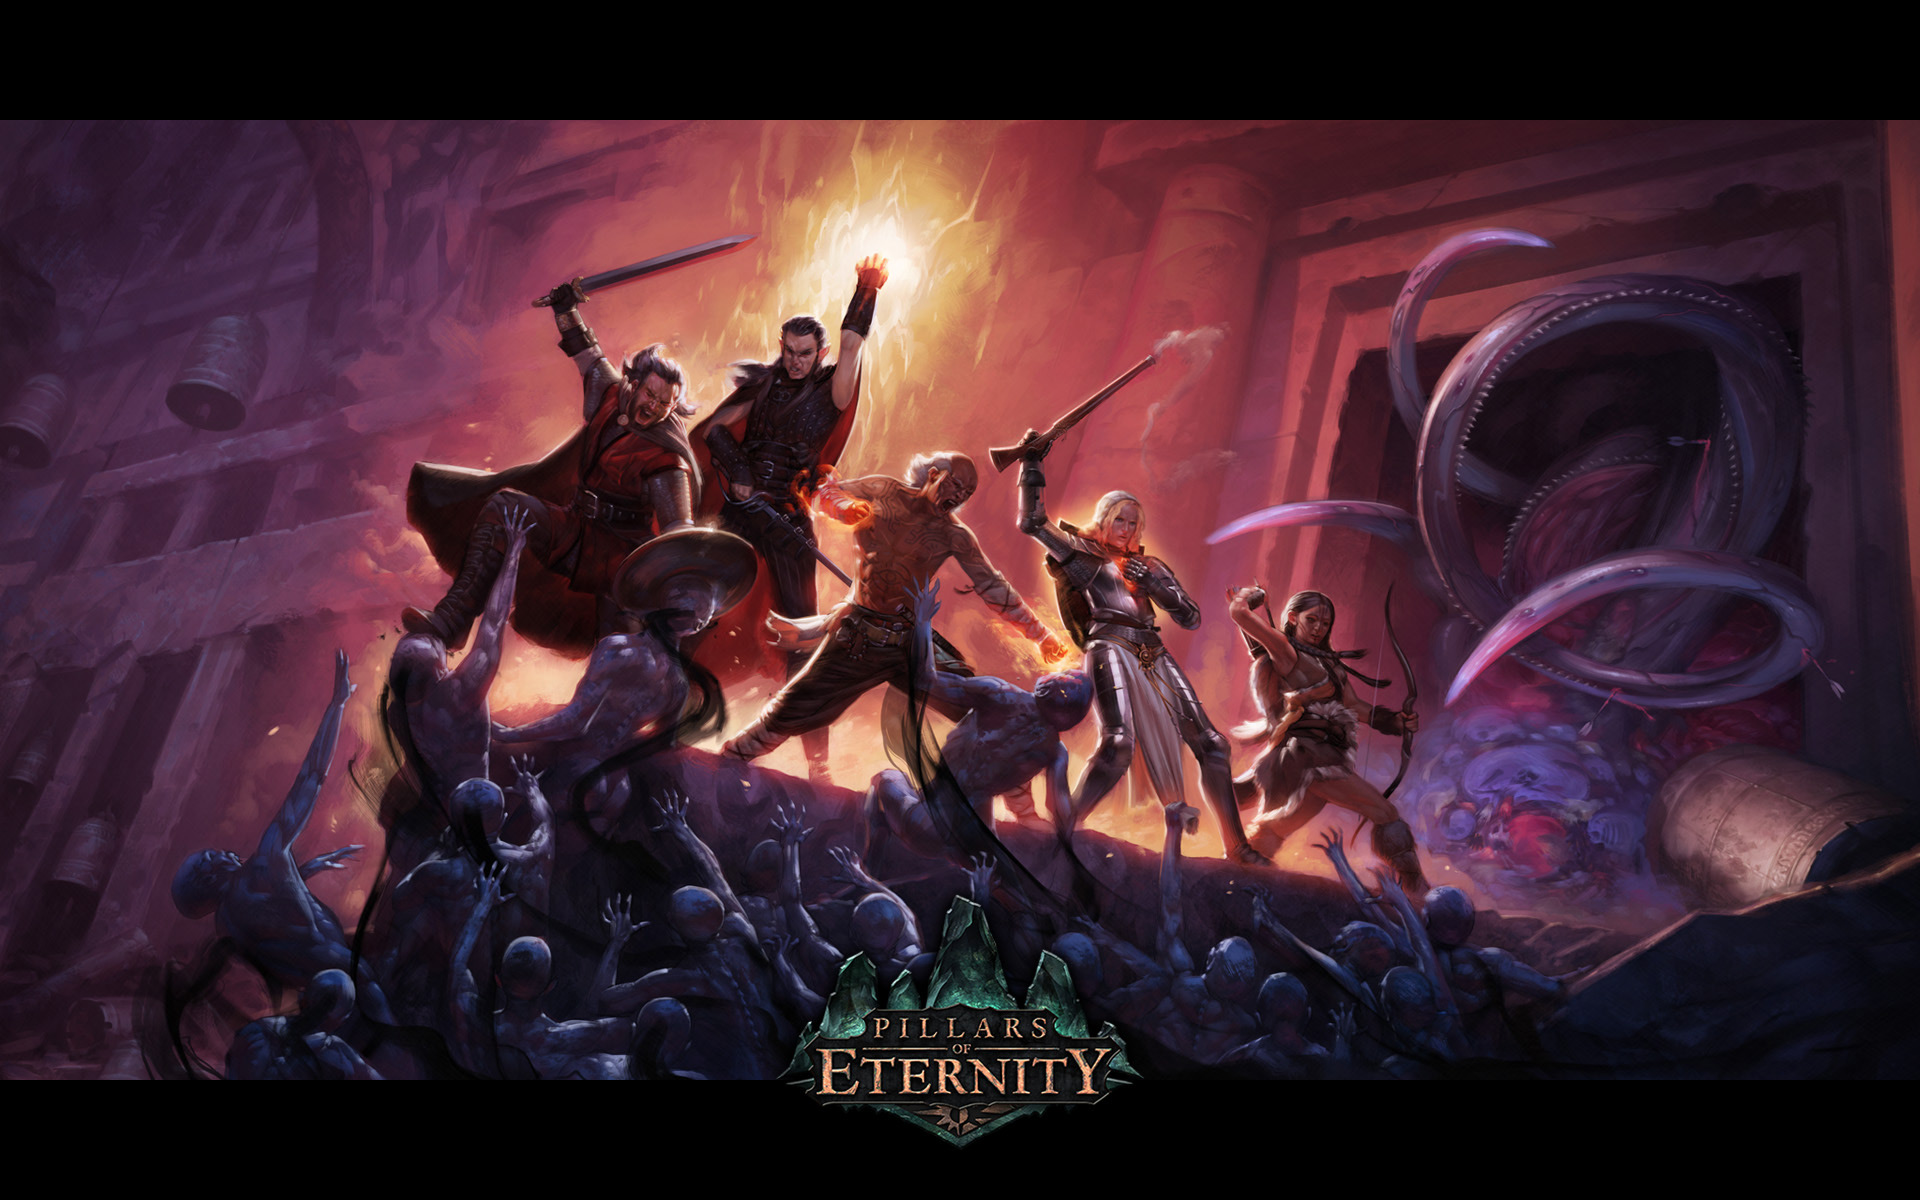 Pillars of Eternity wymagania